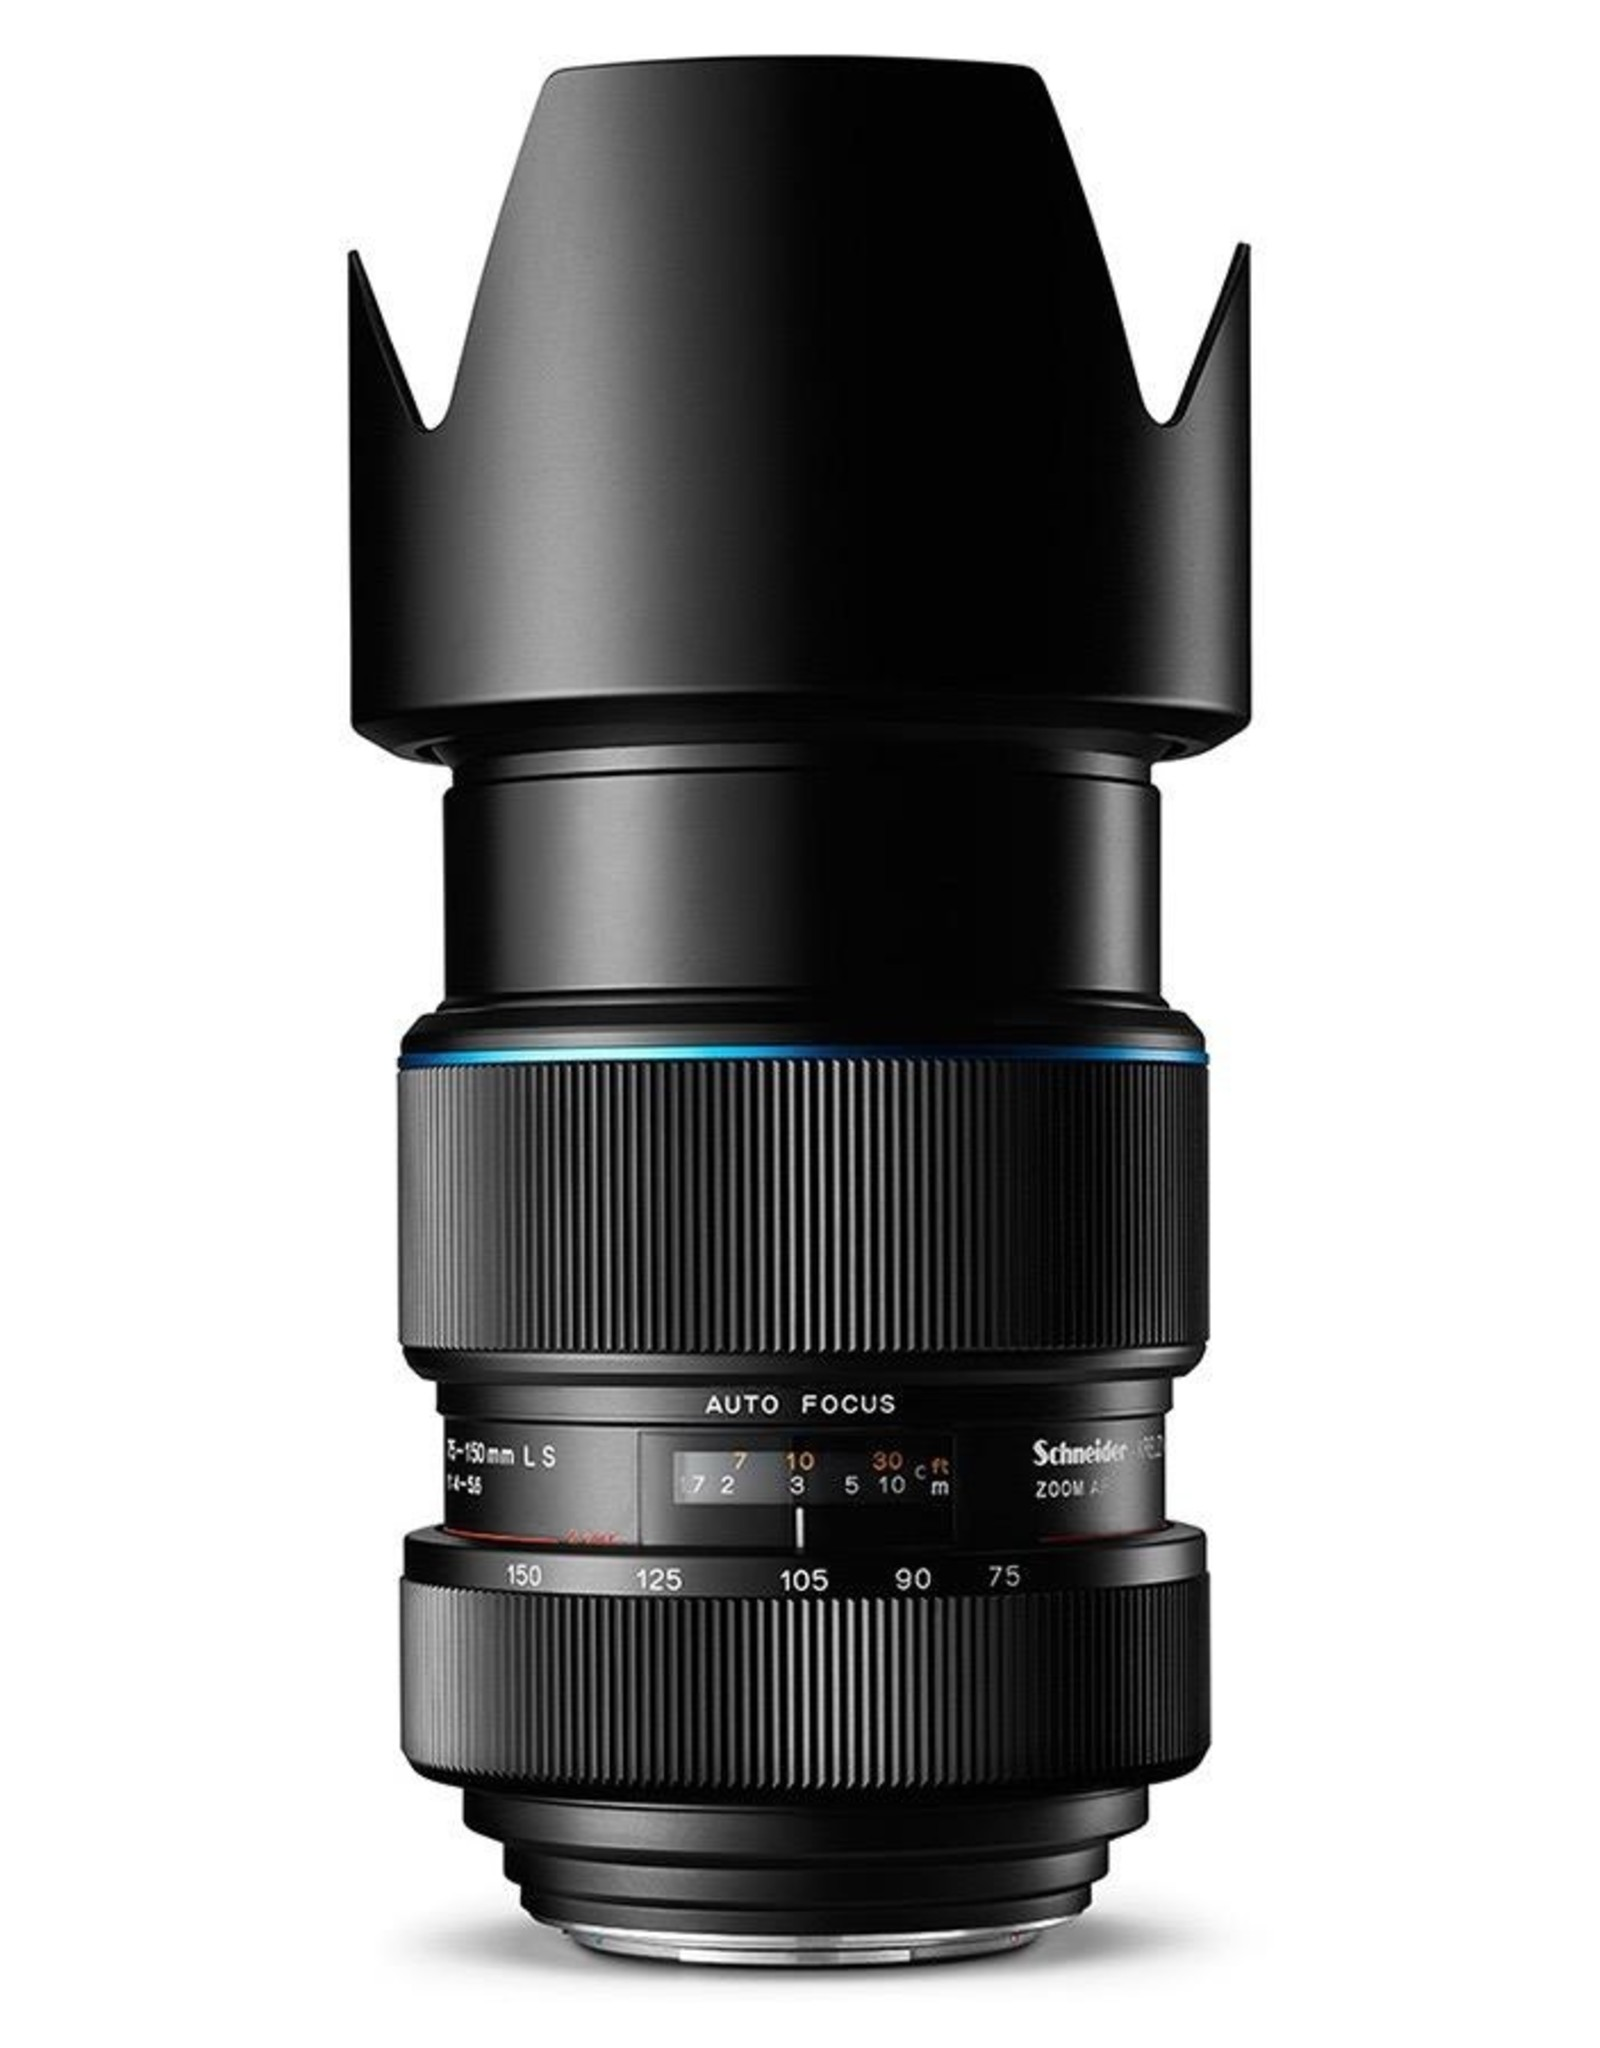 Phase One Phase One Schneider Kreuznach LS 75-150mm f/4.0-5.6 Blue Ring  - ø95mm Schneider Kreuznach Lenses come with a 1 Year Warranty